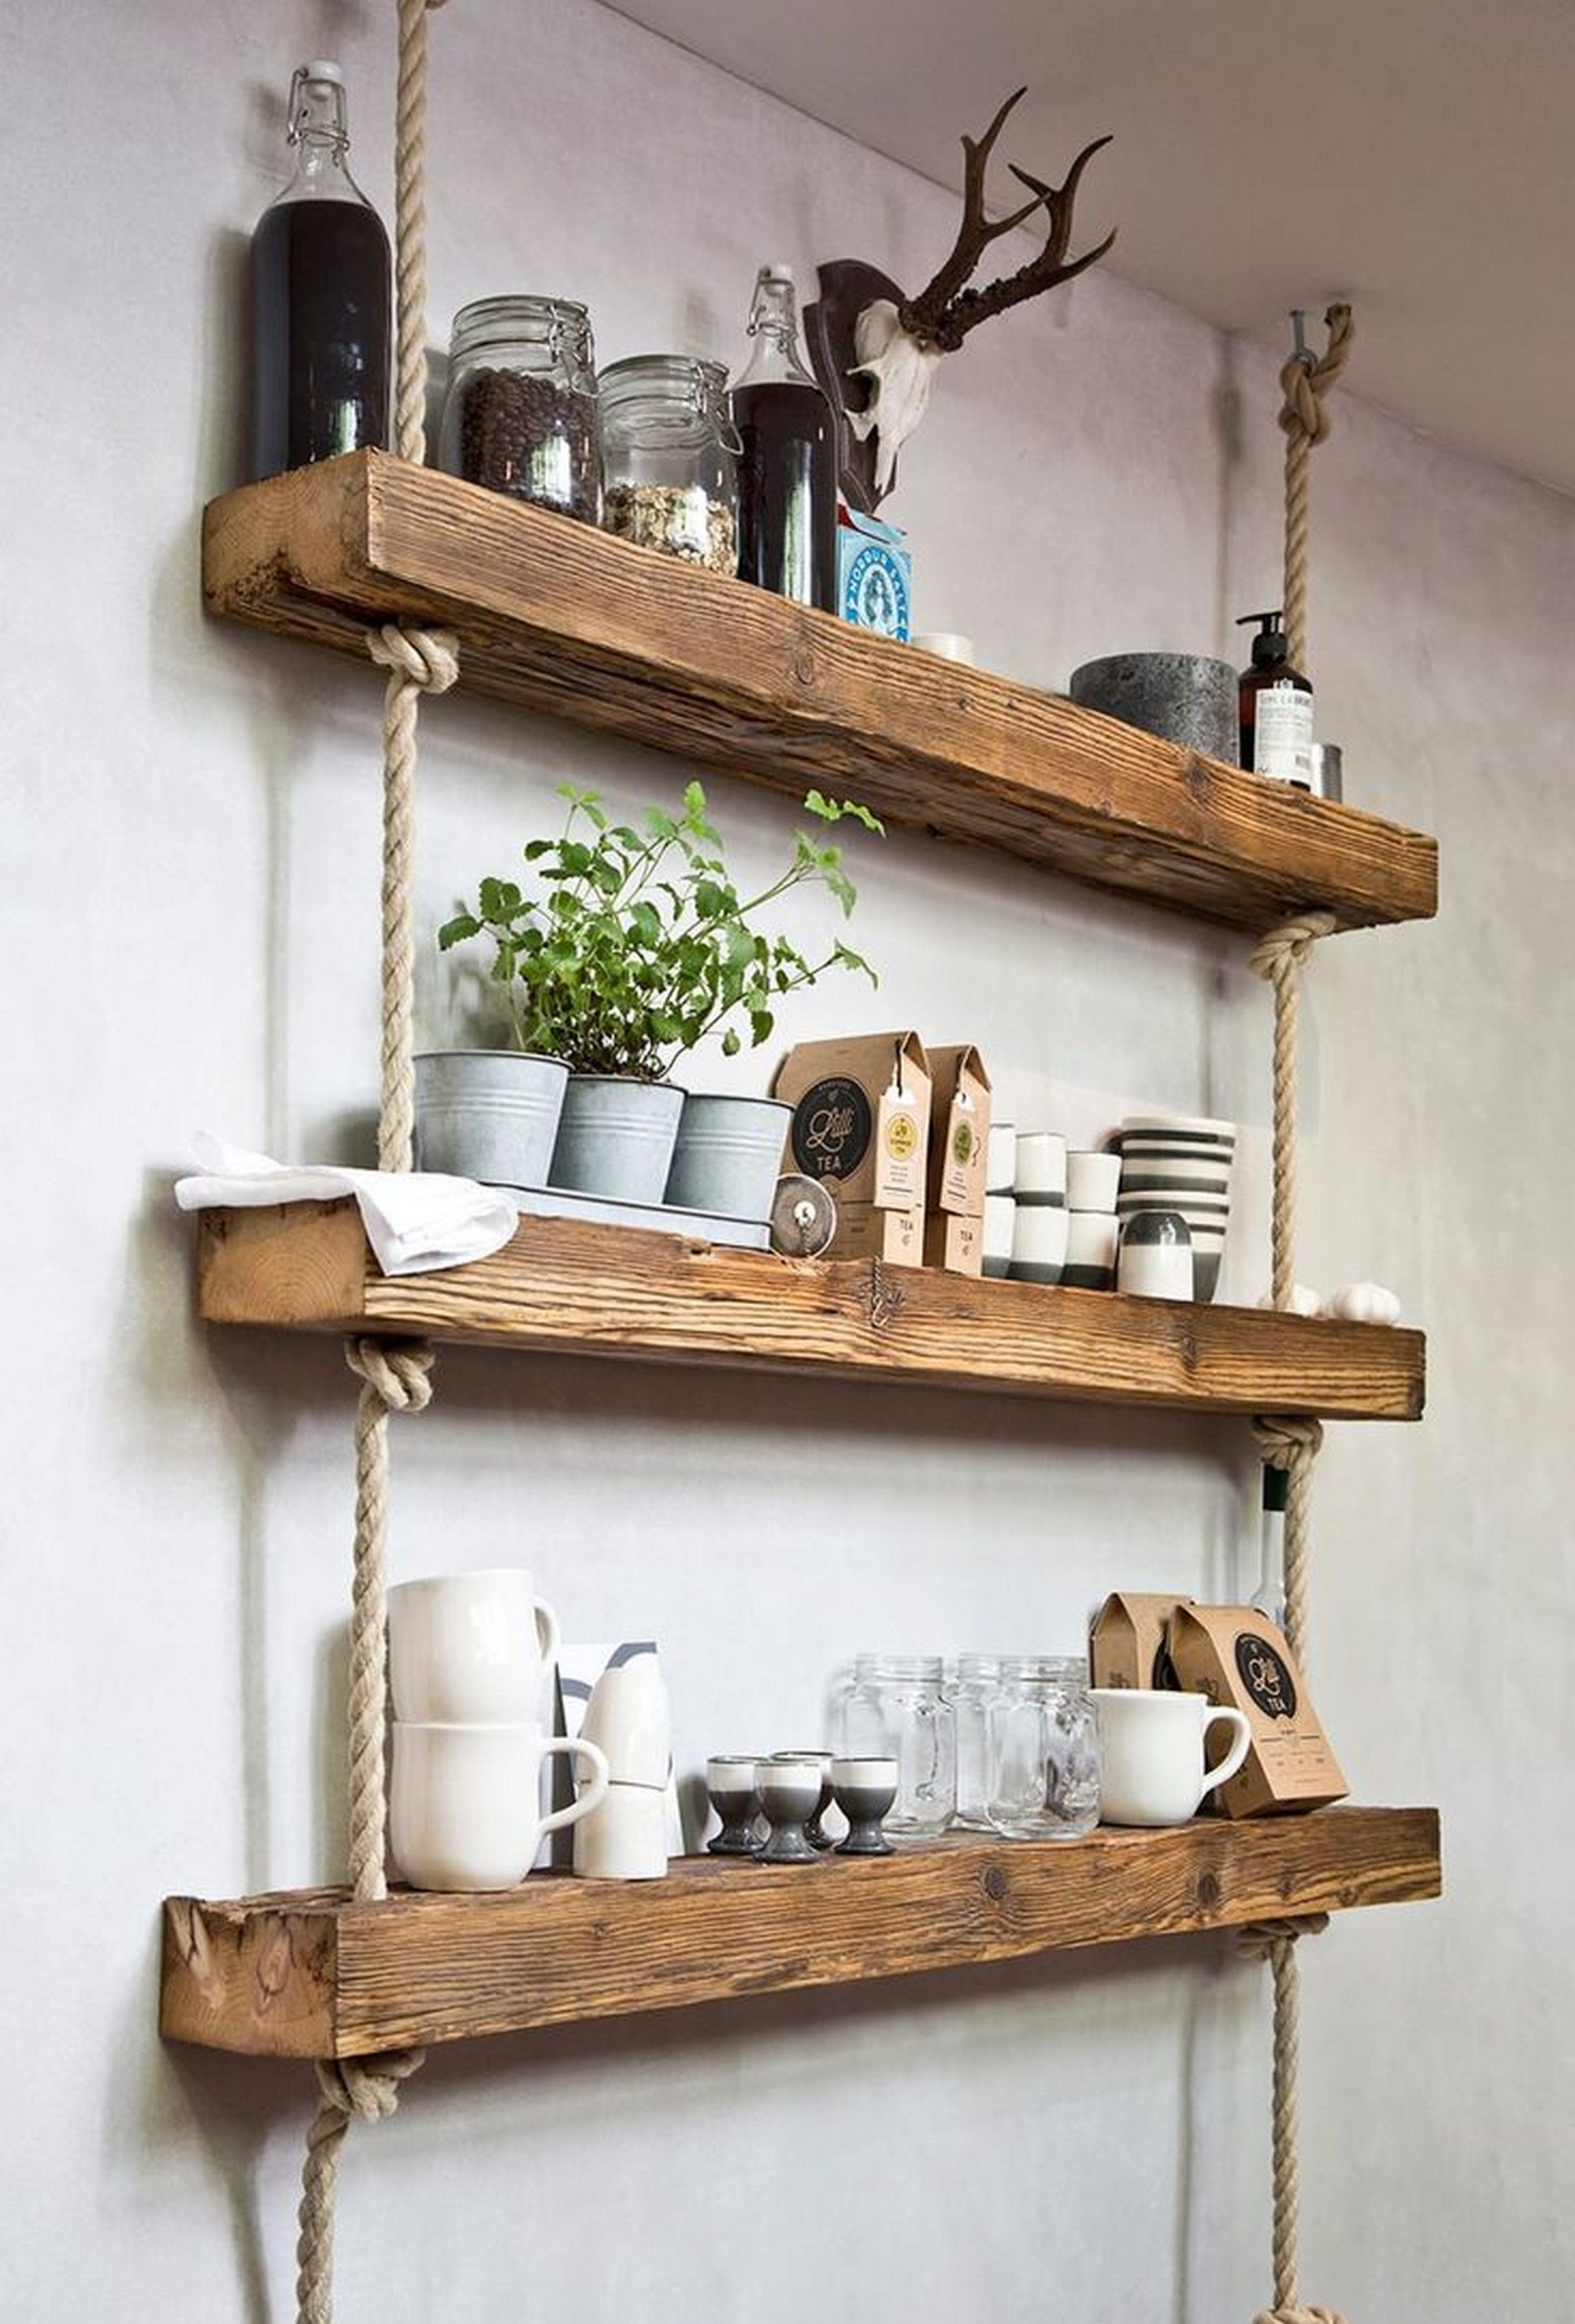 Wall Shelf Design Easy And Stylish Diy Wooden Wall Shelves Ideas Wooden Pallet